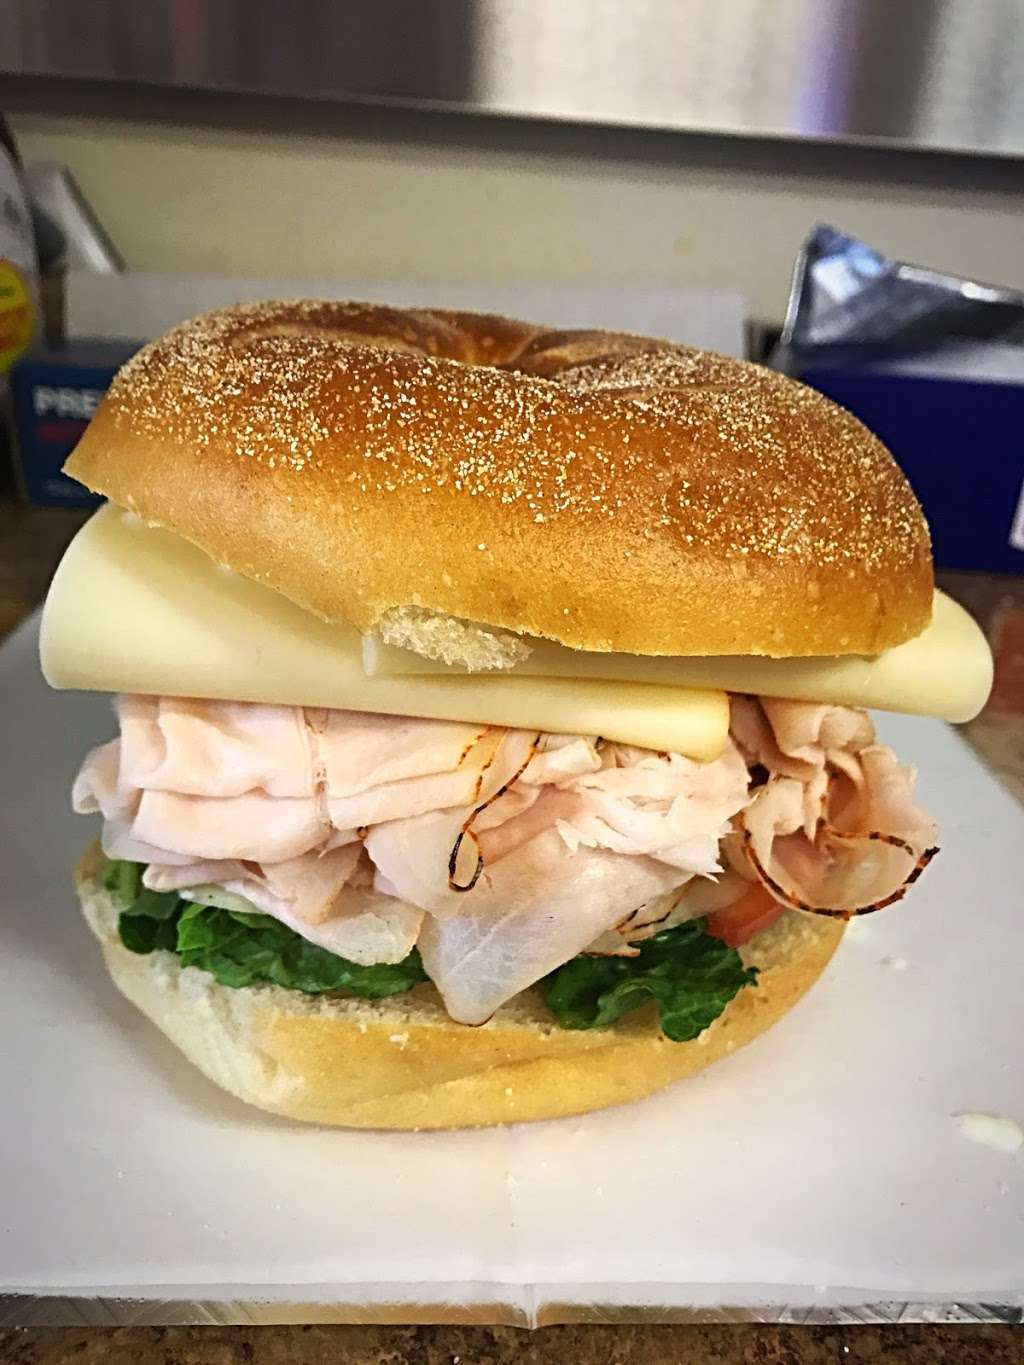 ABC DELI & GRILL - store    Photo 6 of 10   Address: 36 James St, Middletown, NY 10940, USA   Phone: (845) 239-4241